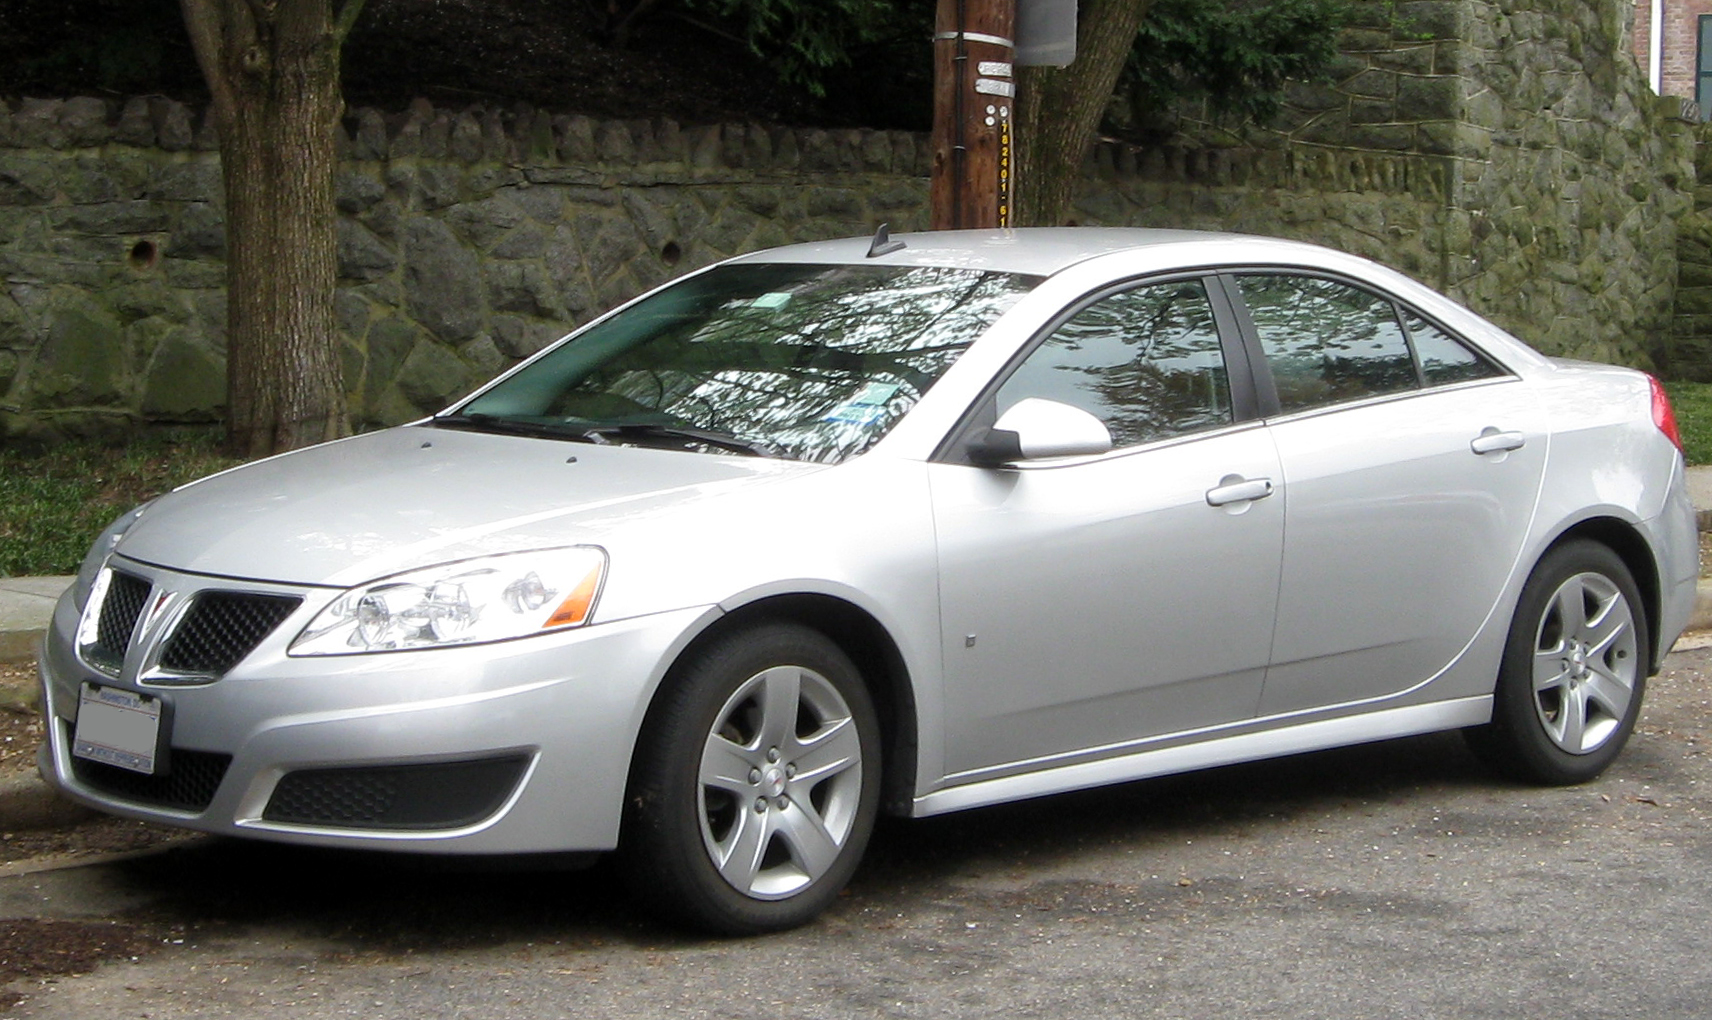 2009 Pontiac G8 Base Sedan 3 6l V6 Auto